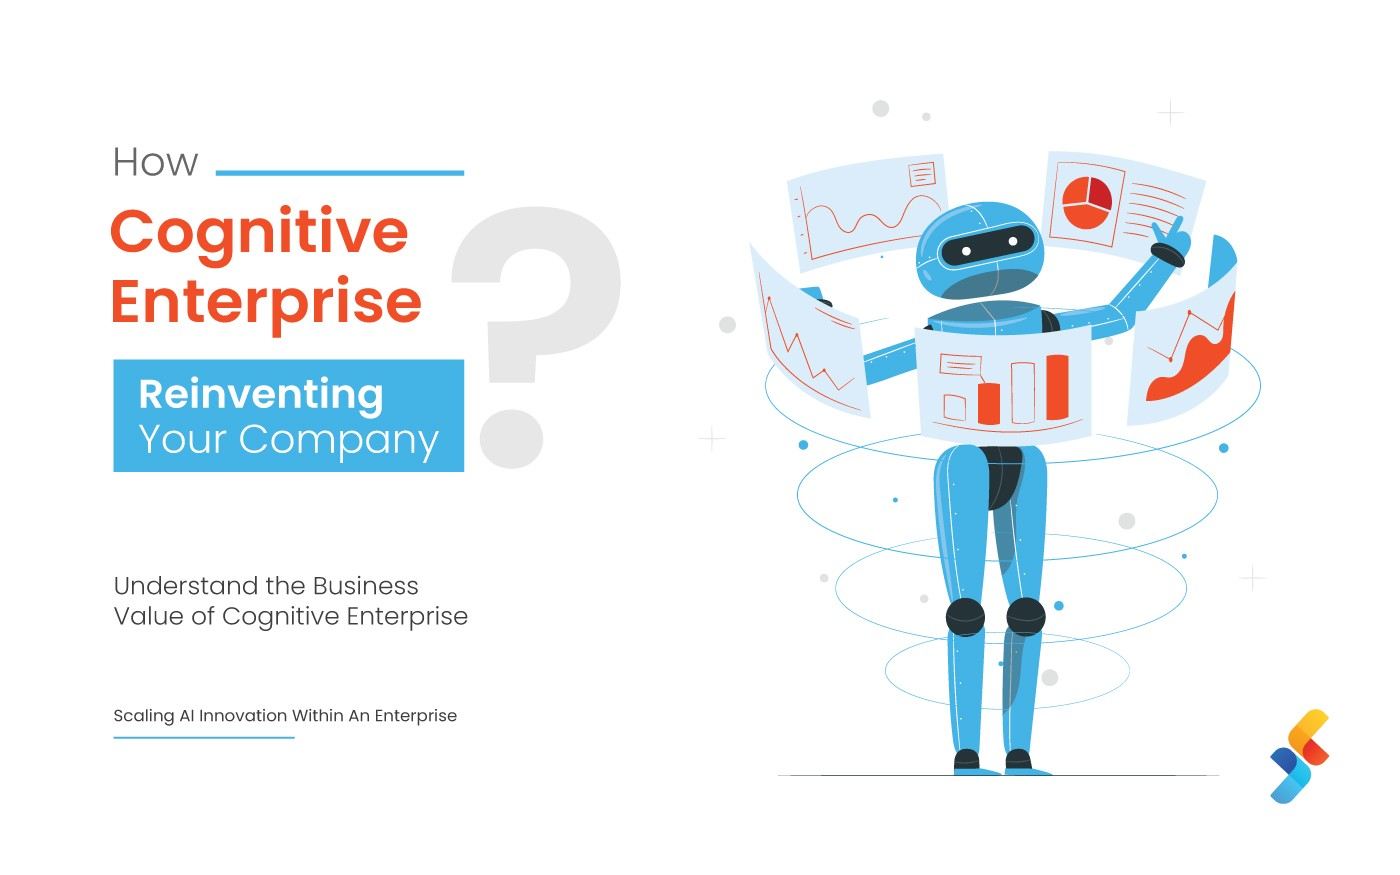 Cognitive Enterprise